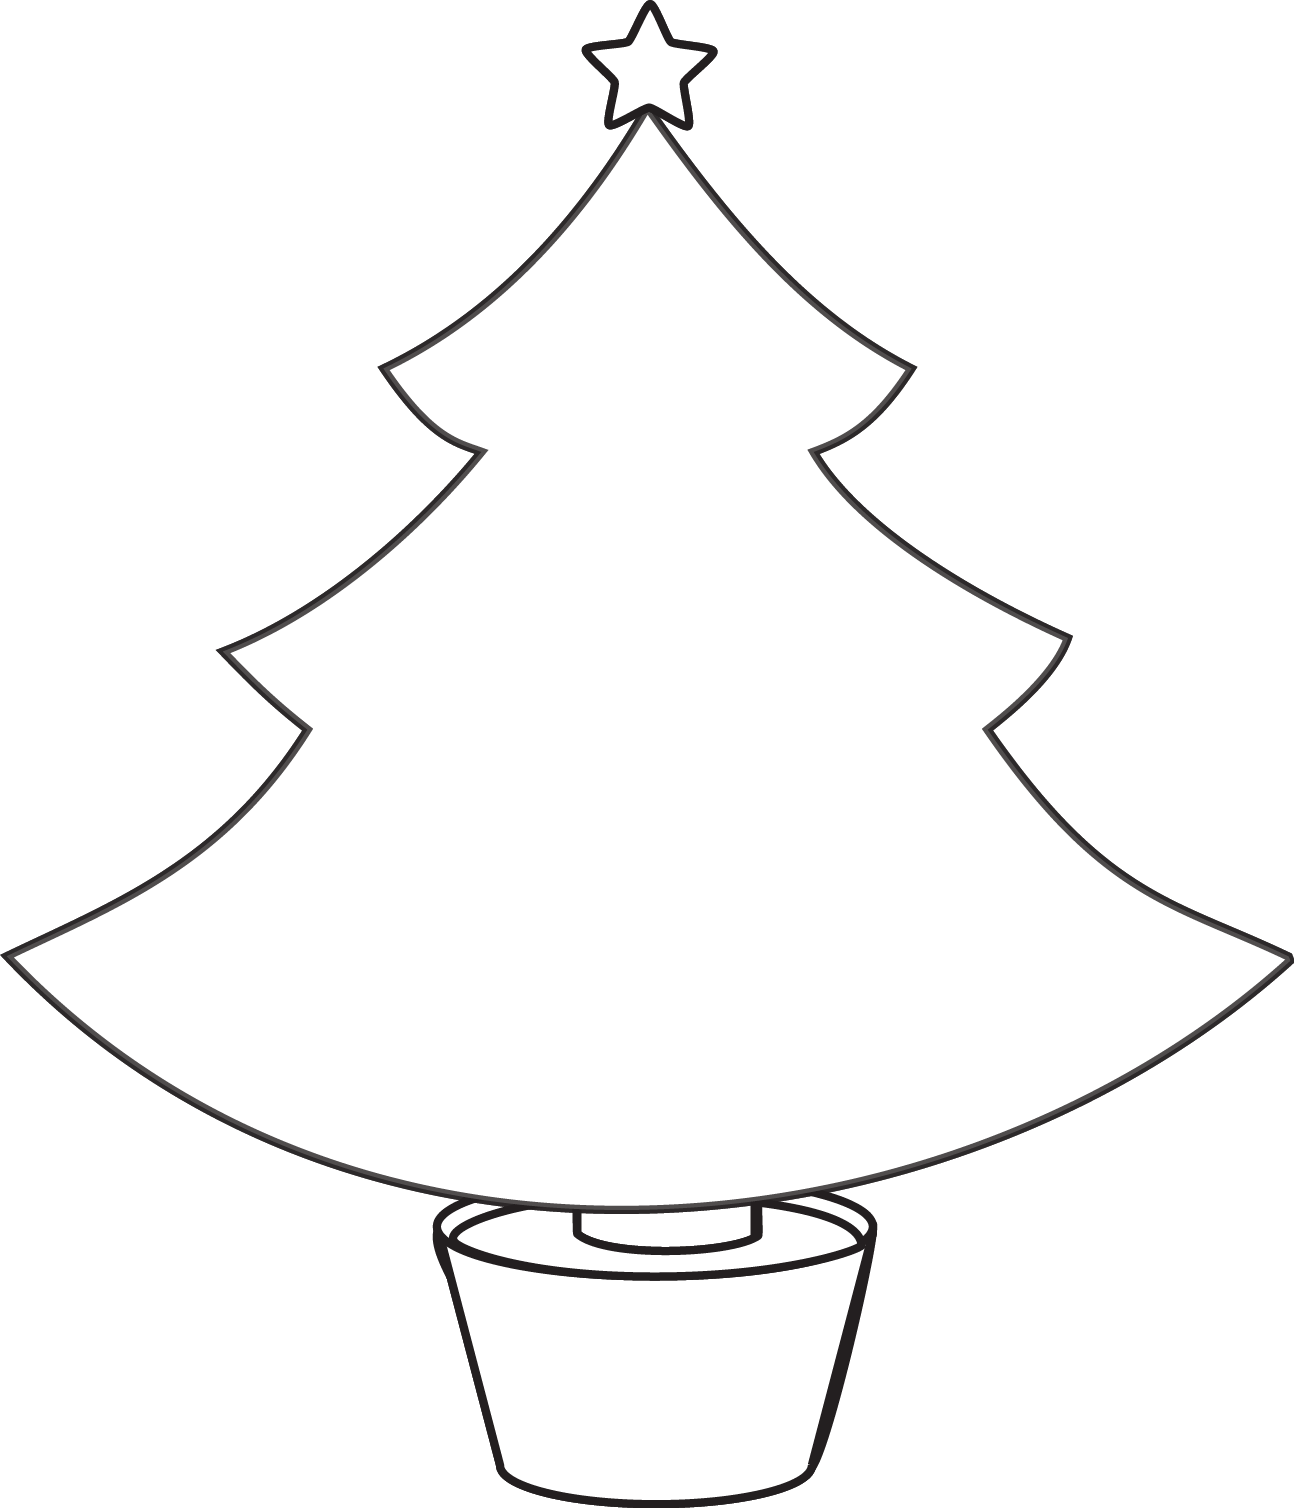 1294x1508 Christmas Decorations Line Drawings